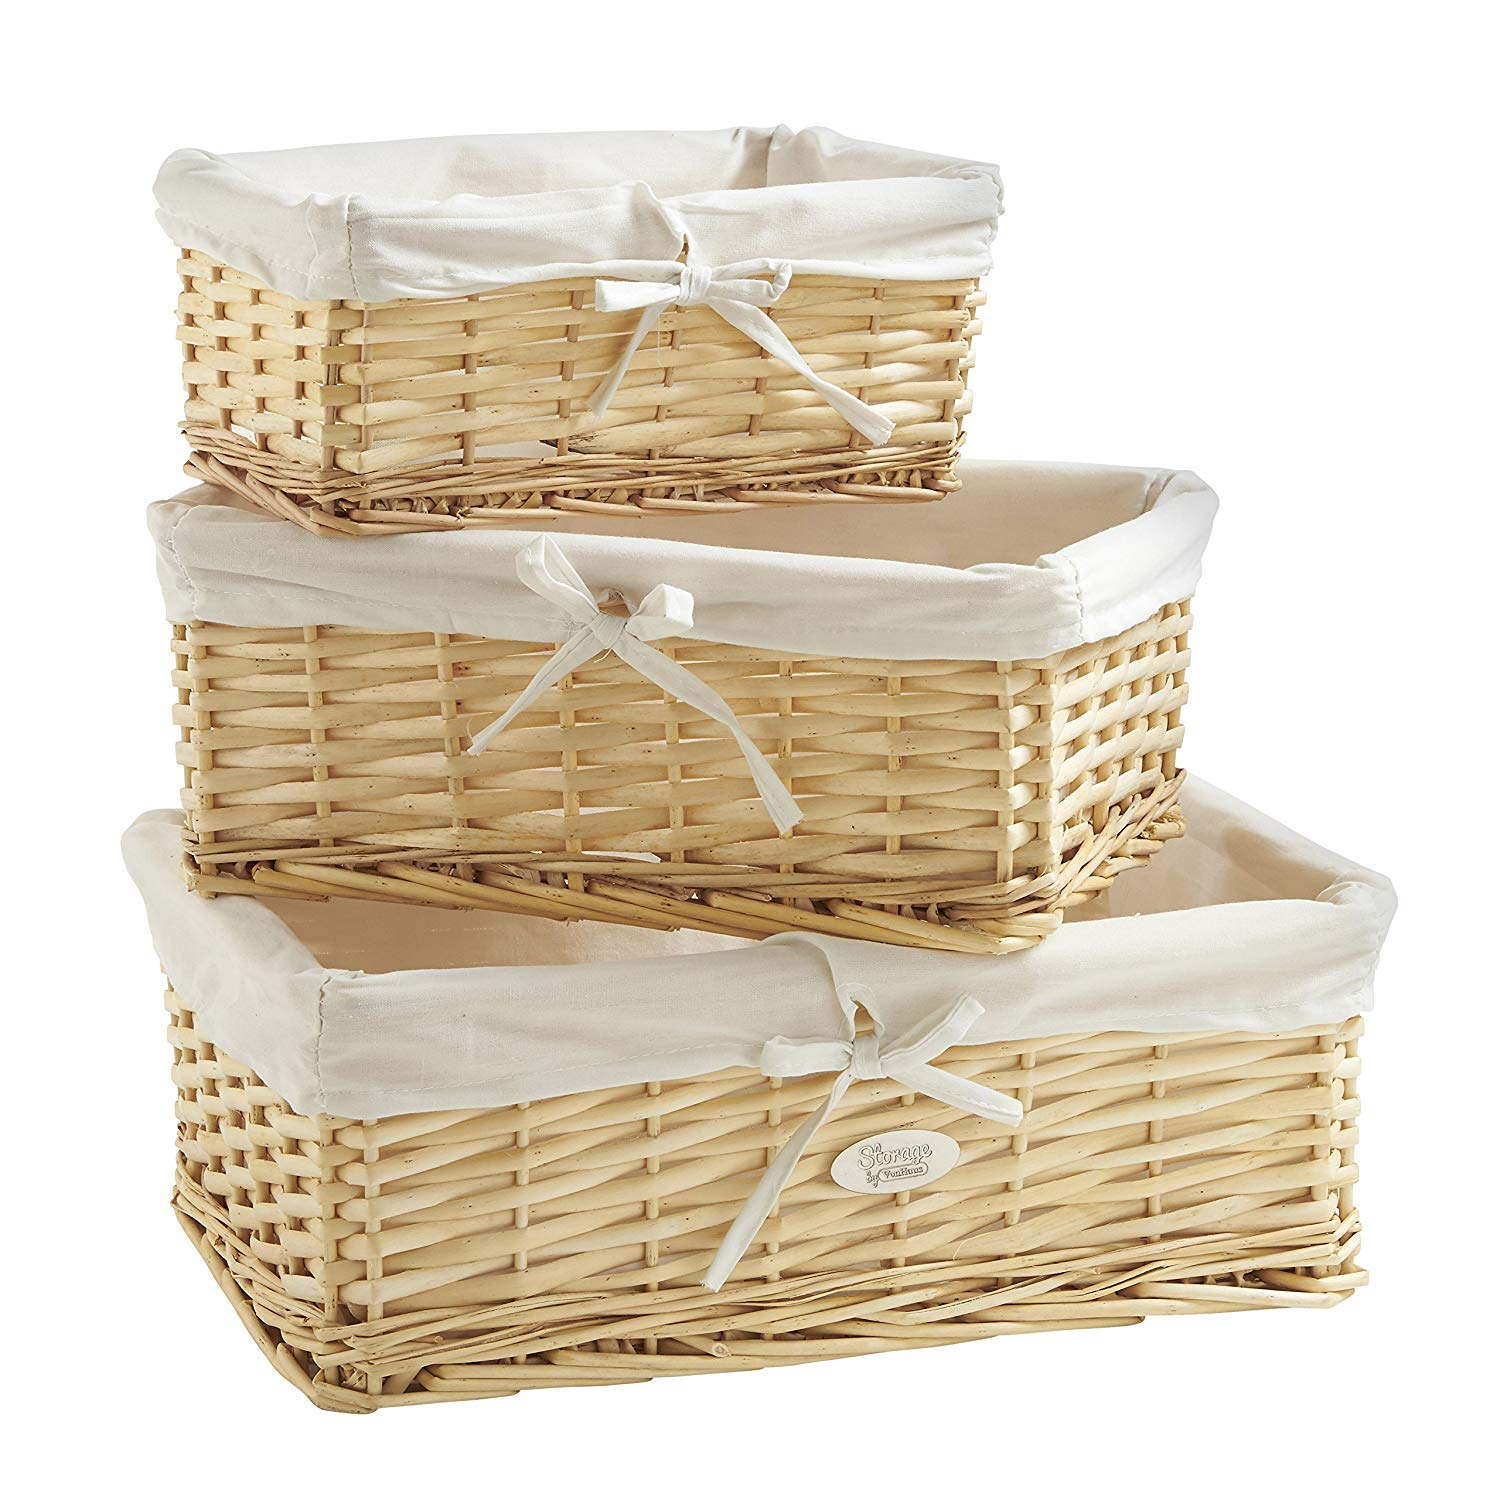 Natural Wicker Baskets with Removable Washable White Liners